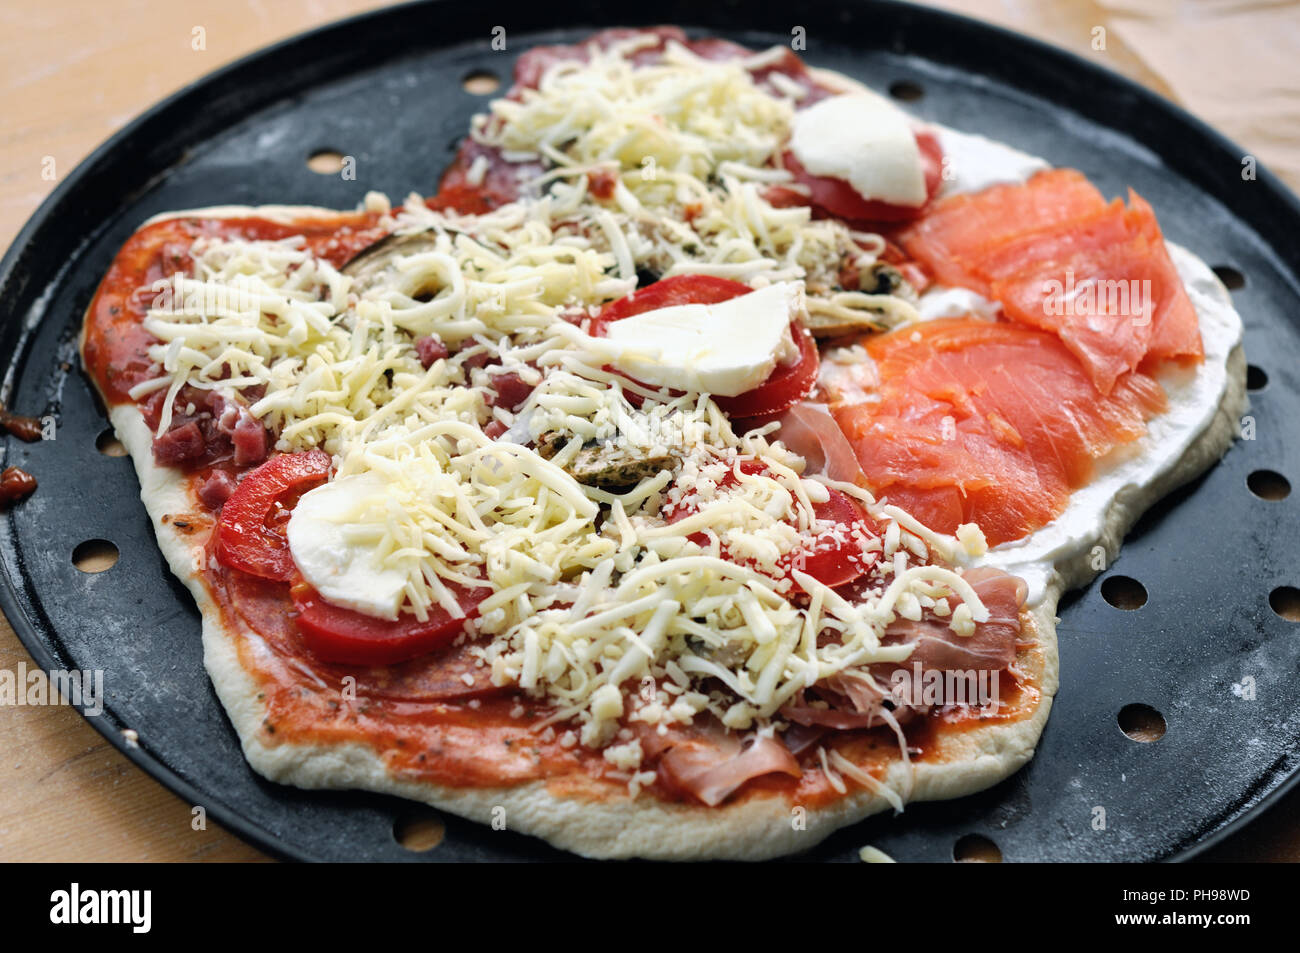 Homemade unbaked pizza prepared - Stock Image